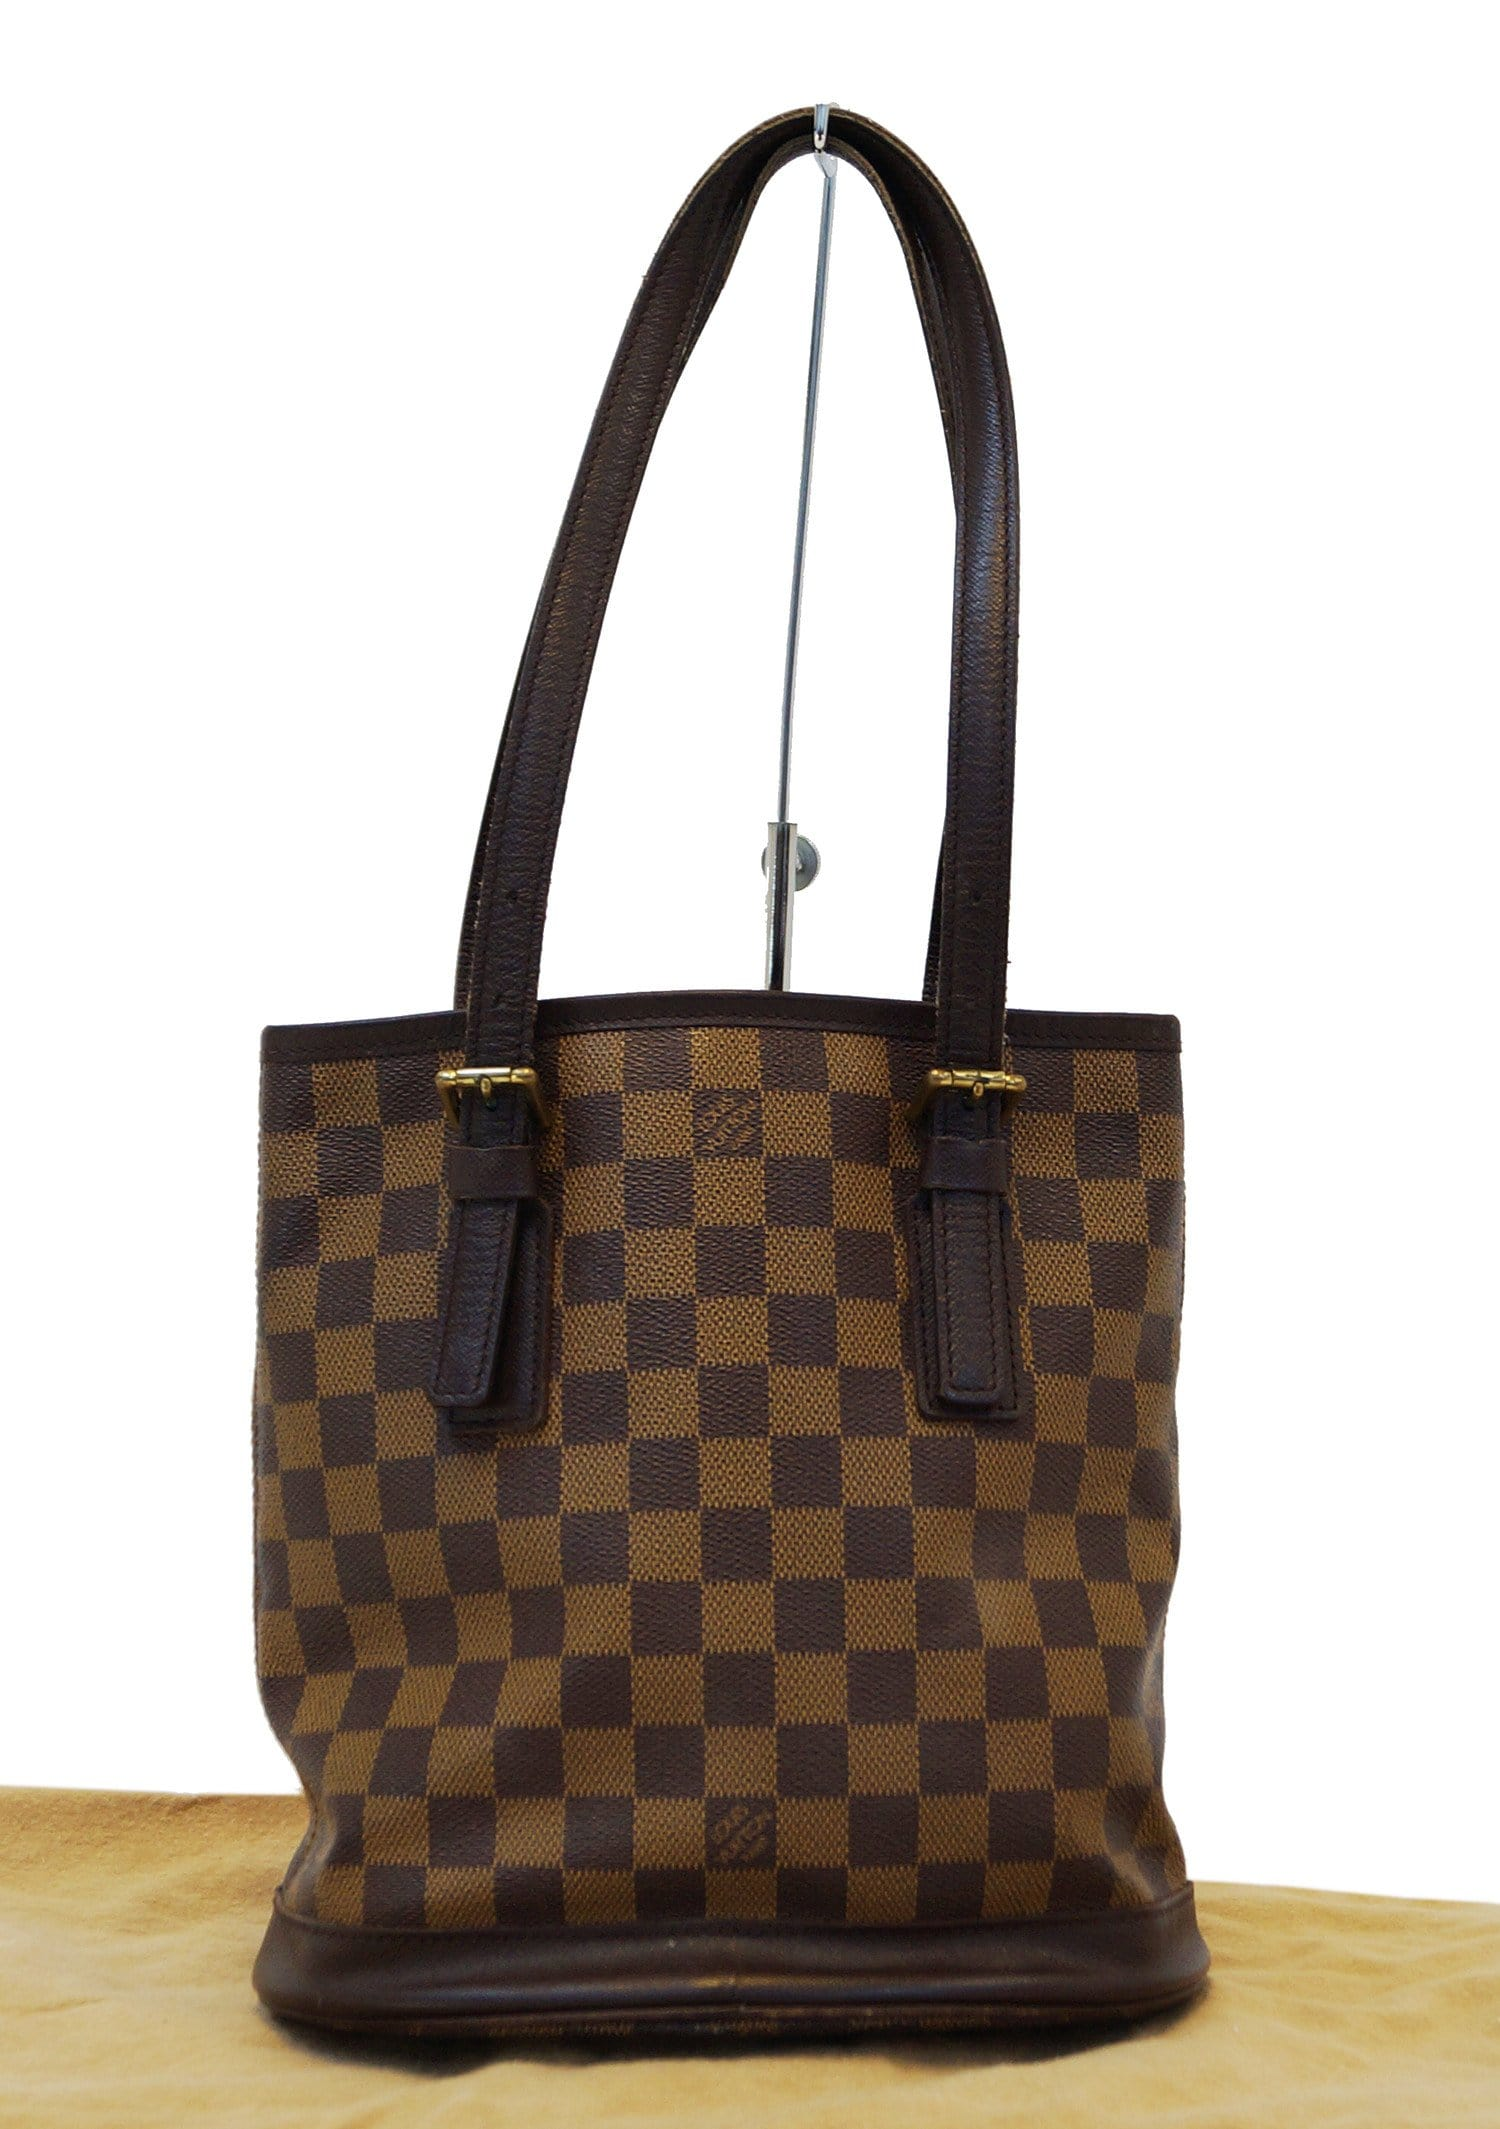 dbcd3842d7df LOUIS VUITTON Damier Ebene Marais Bucket Shoulder Bag